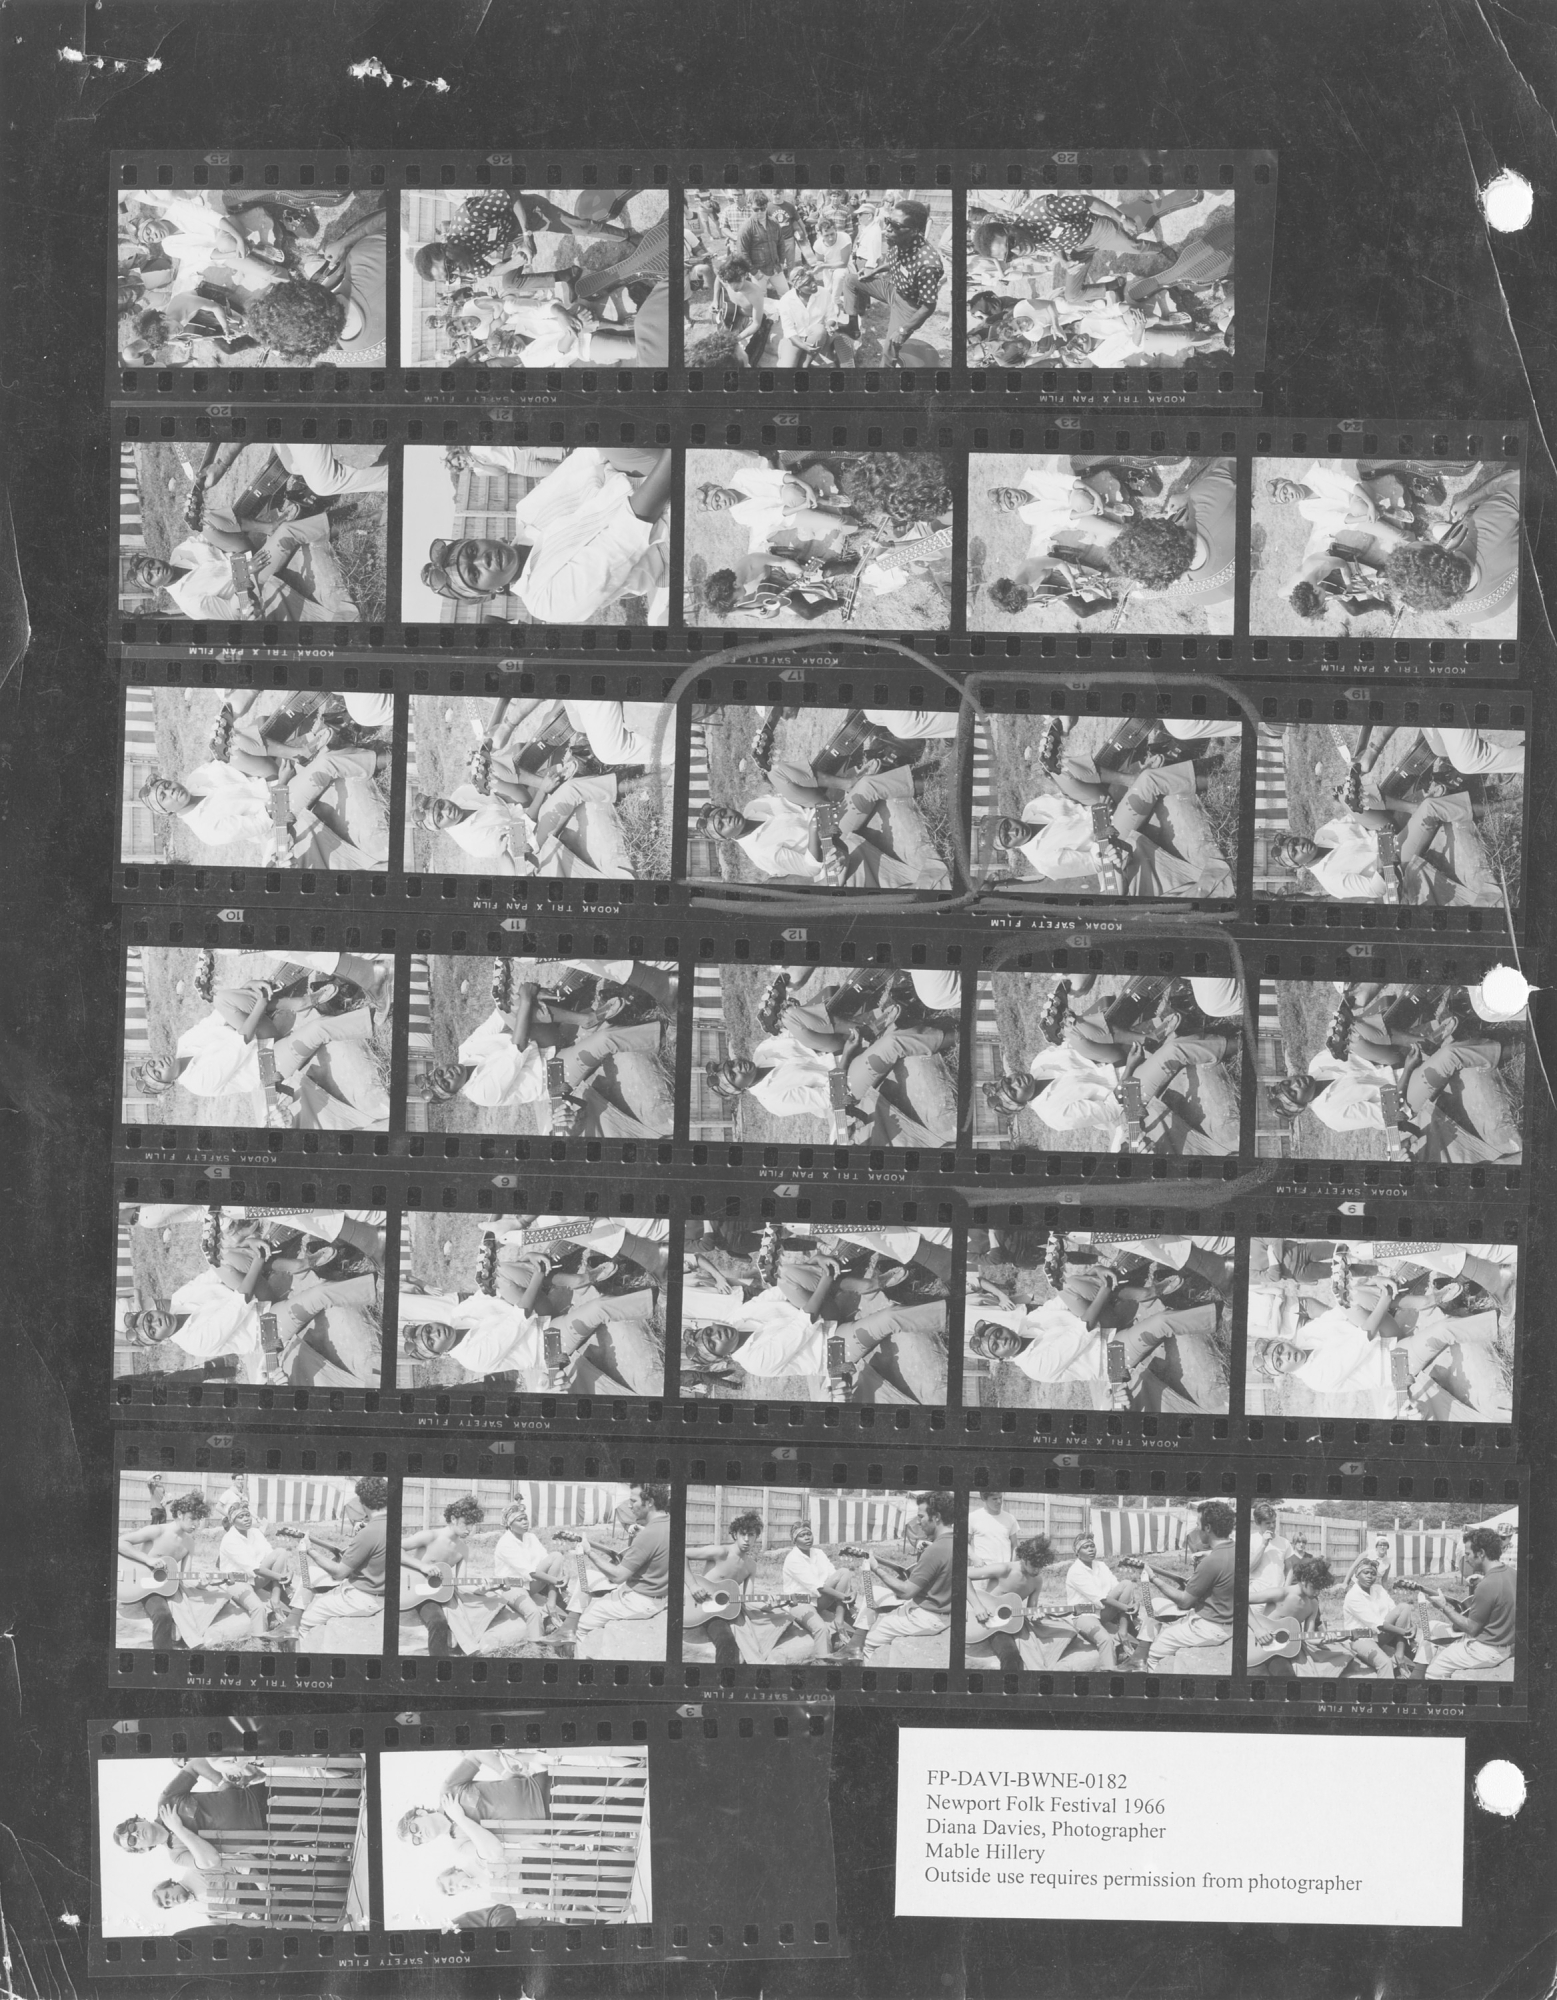 Mable Hillery turns up across several of Davies' Newport Folk Festival contact sheets. In 1964 and 1966, Hillery performed with the Georgia Sea Island Singers, while in these shots she is found in more informal circumstances around the festival grounds.